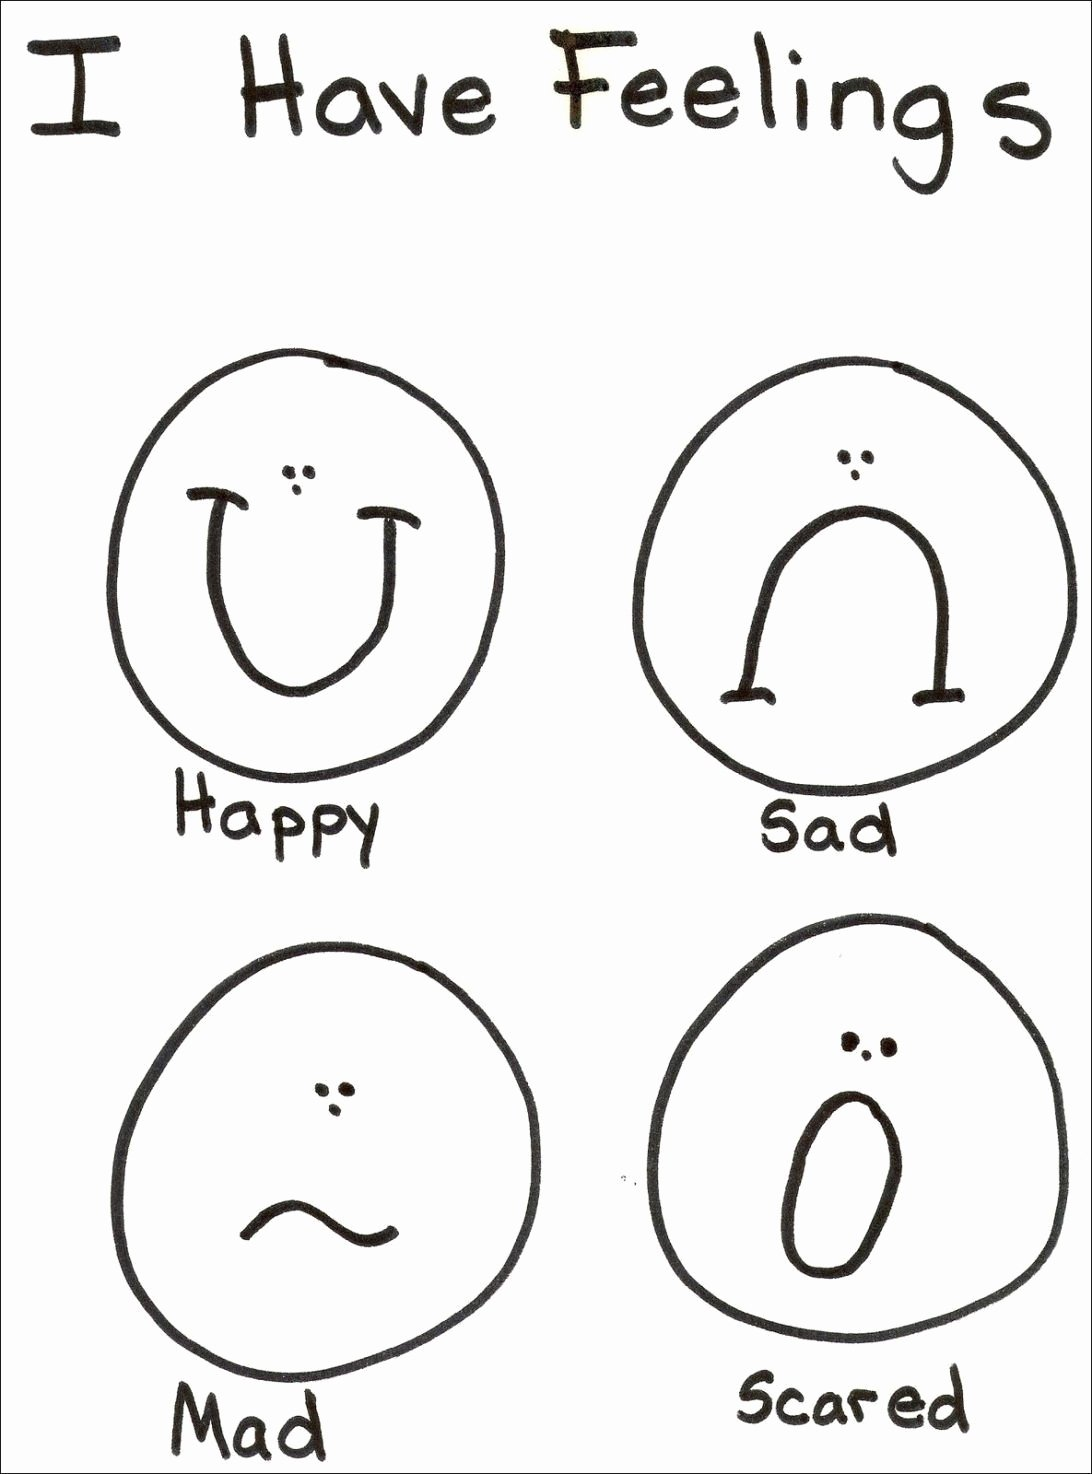 Feelings and Emotions Worksheets for Preschoolers Free Feelings and Emotions Worksheets Printable top 12 Fantastic